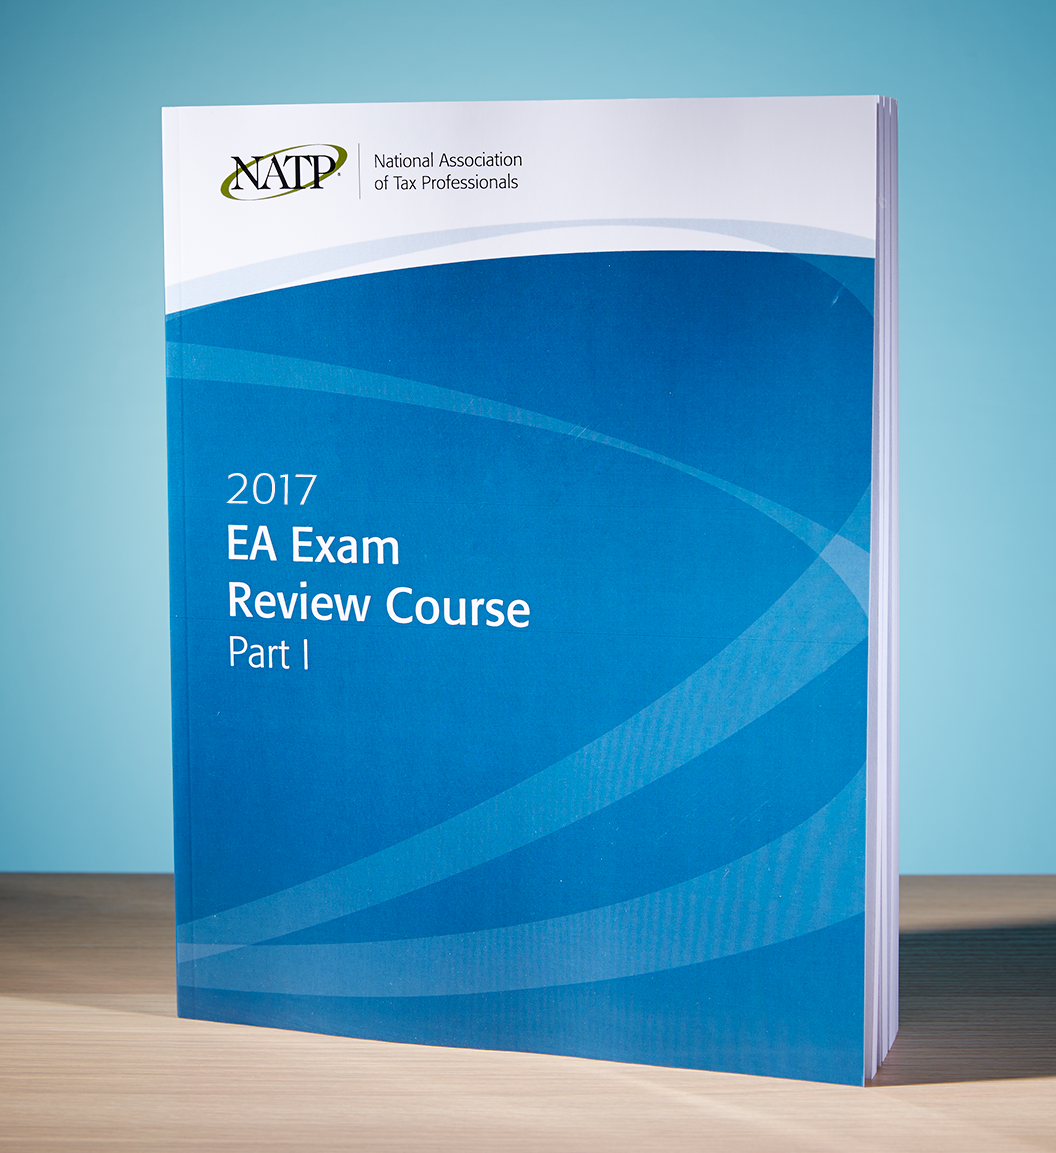 EA Exam Review Course Part I Textbook (2017) - Special low price for members - #3703